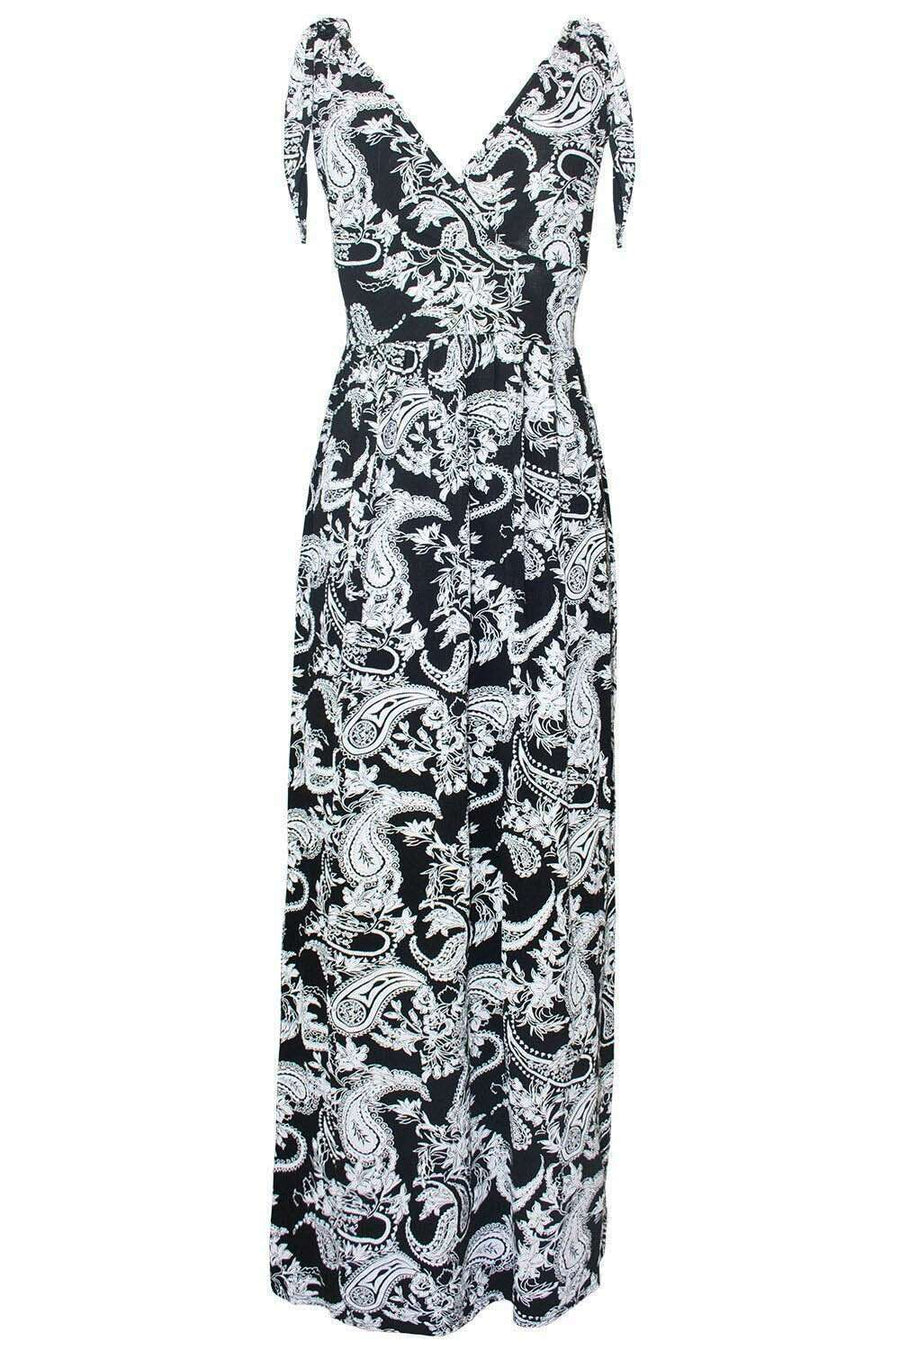 Monochrome Paisley Print Wrap Over Maxi Dress - bejealous-com